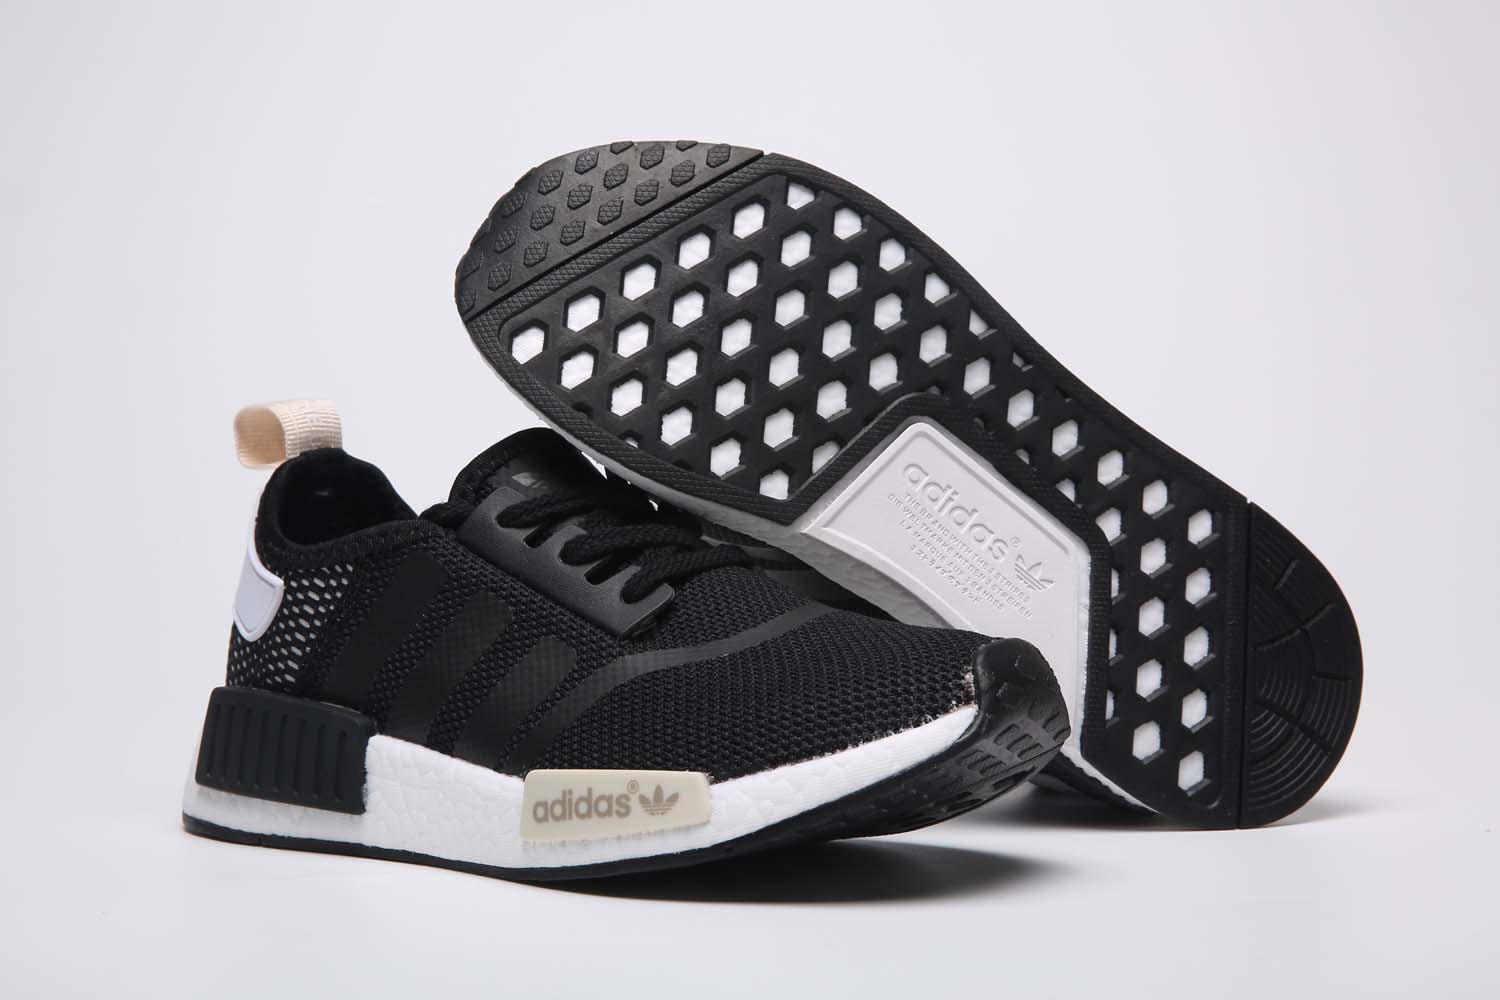 Adidas NMD black Grey